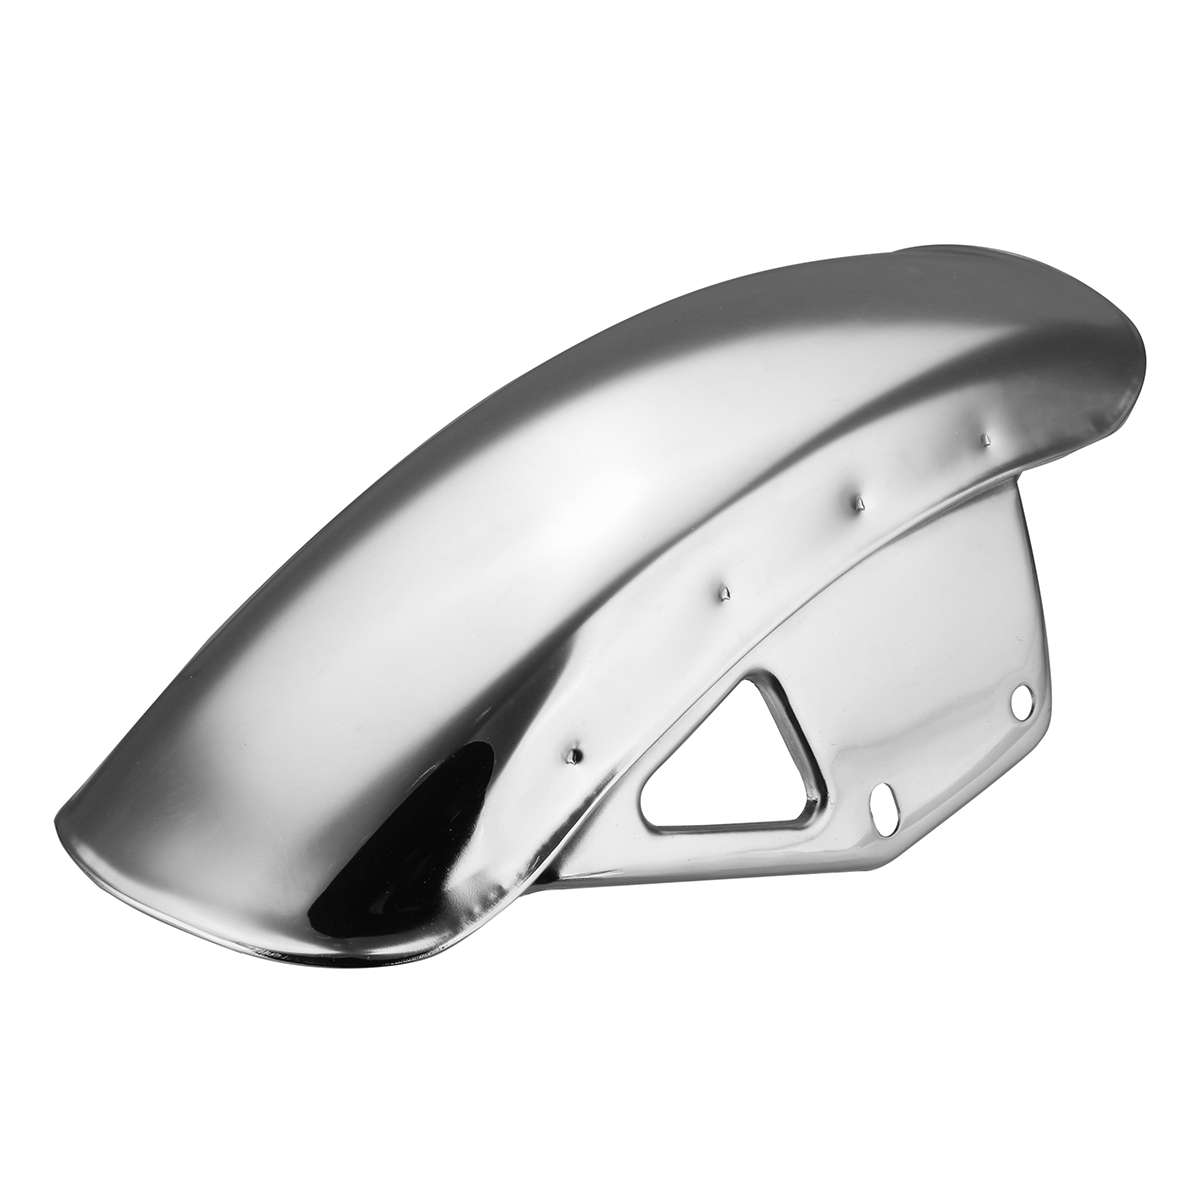 Motorcycle Front Mudguard Fairing Mug Guard Cover For Suzuki GN125 GN250